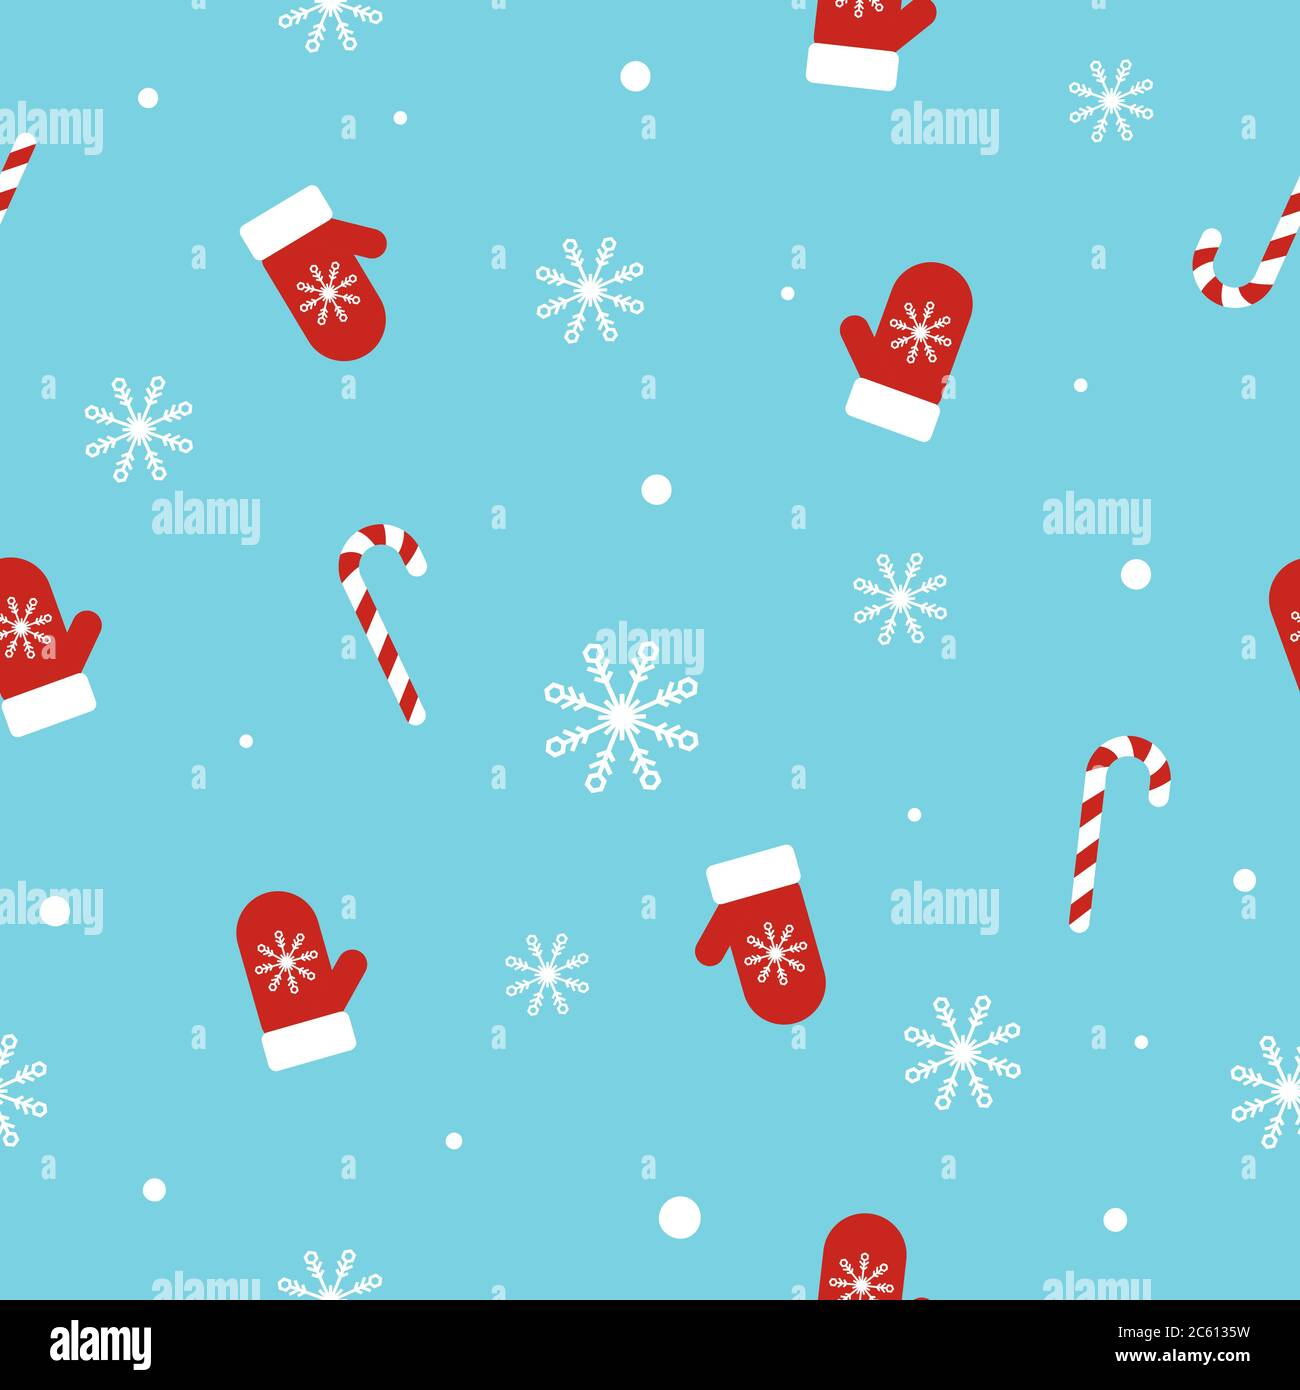 christmas seamless pattern with mittens candy canes snowflakes and snowballs on blue background unique hand drawn winter design vector 2C6135W